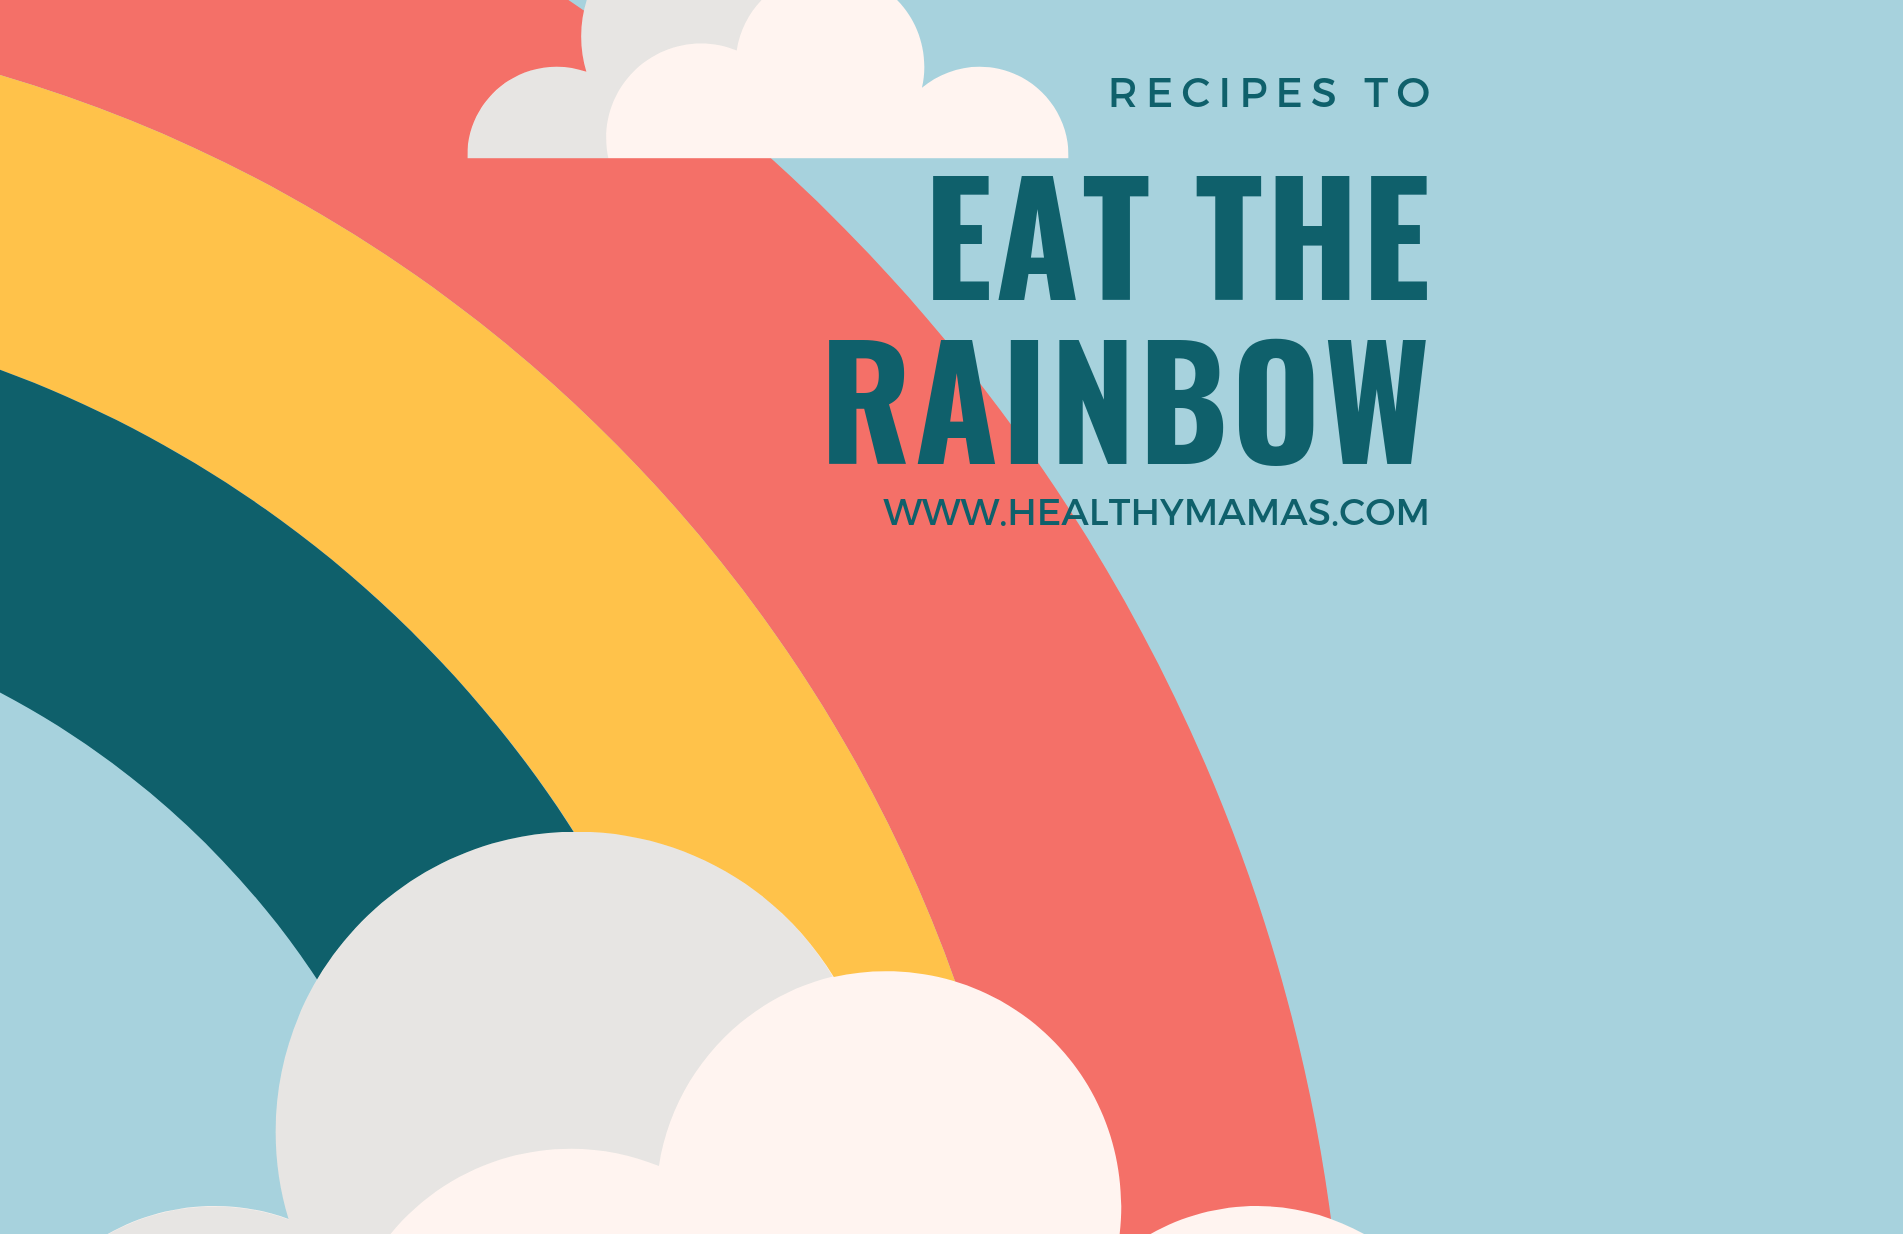 Recipes for Eating the Rainbow